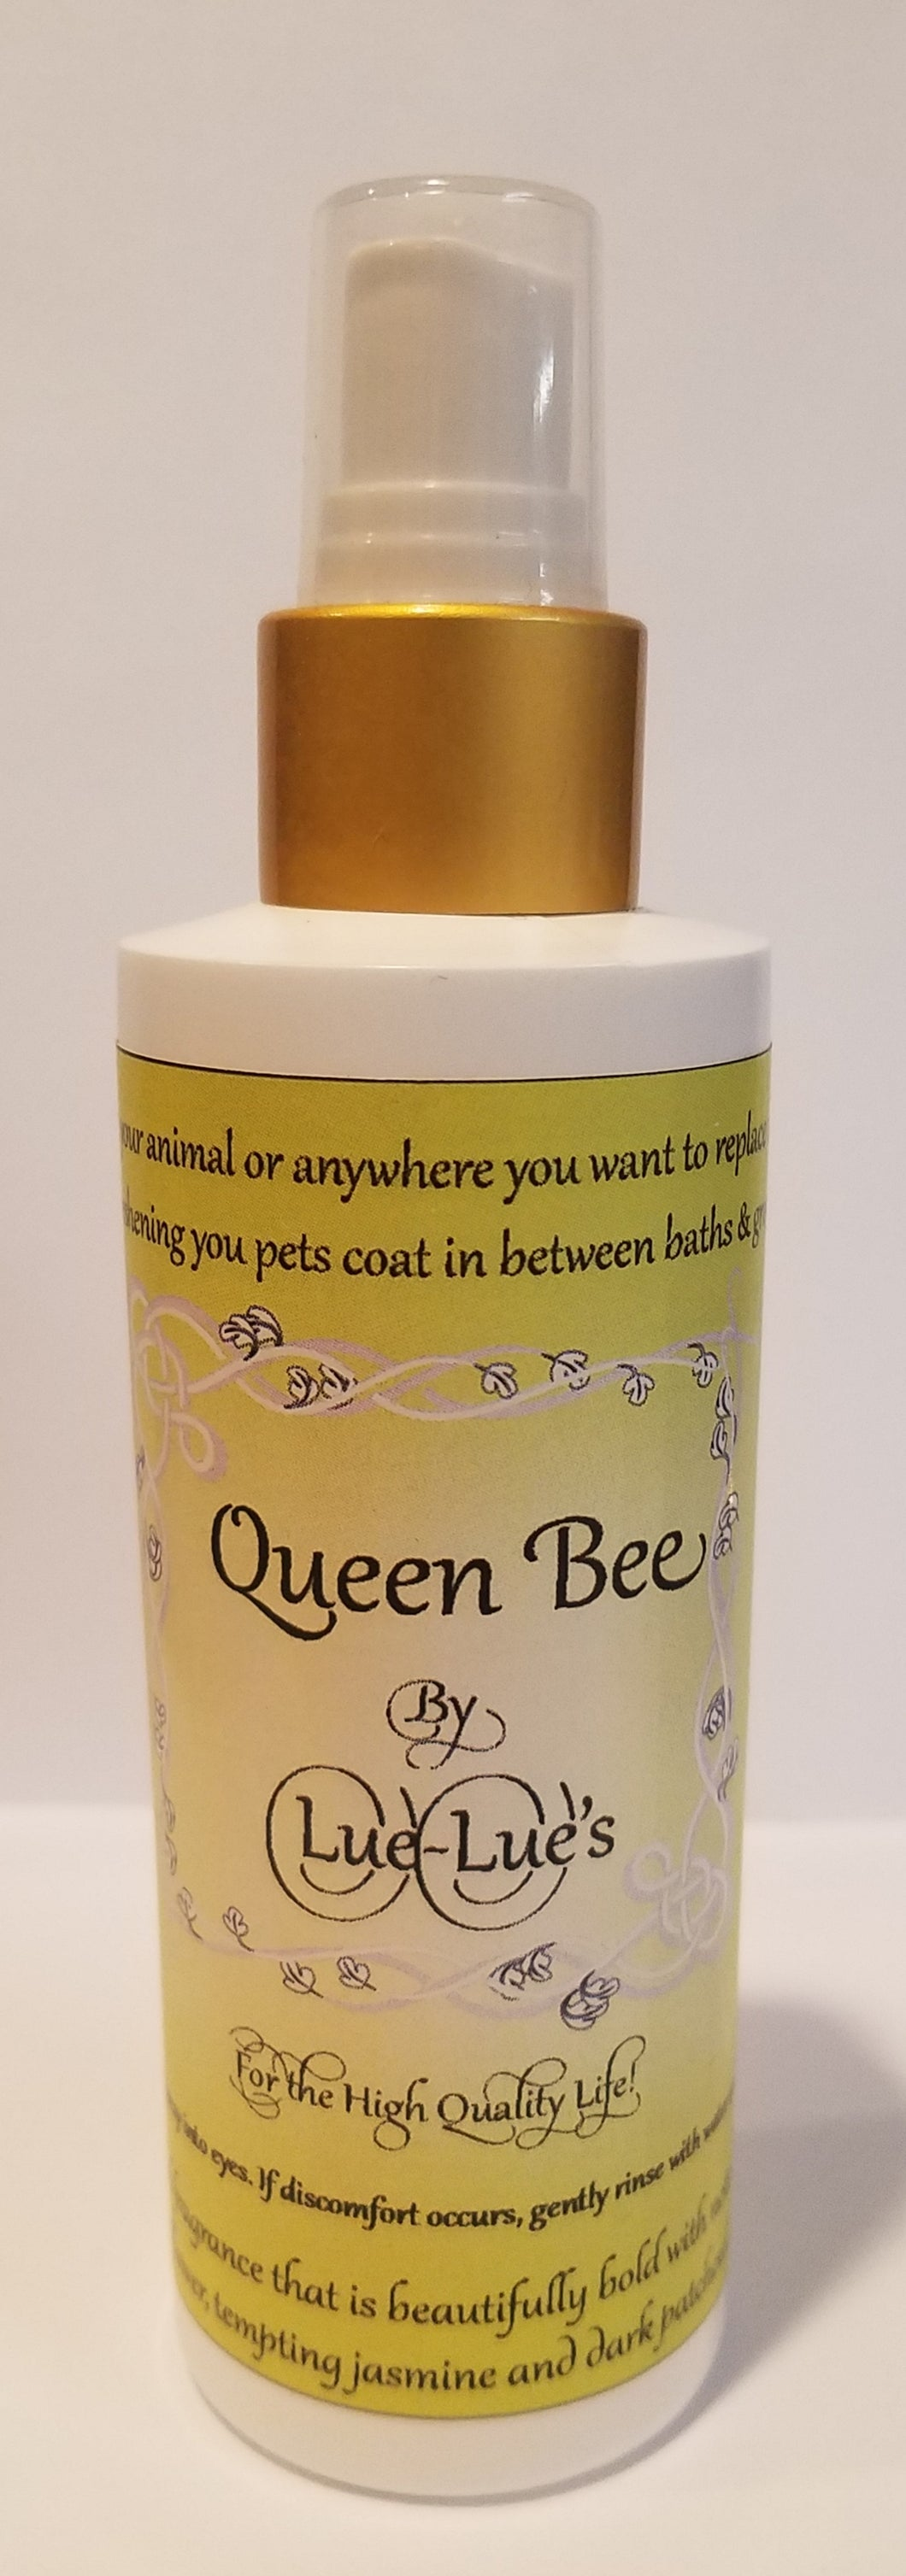 Queen Bee Fragrance - Official Pet Boutique